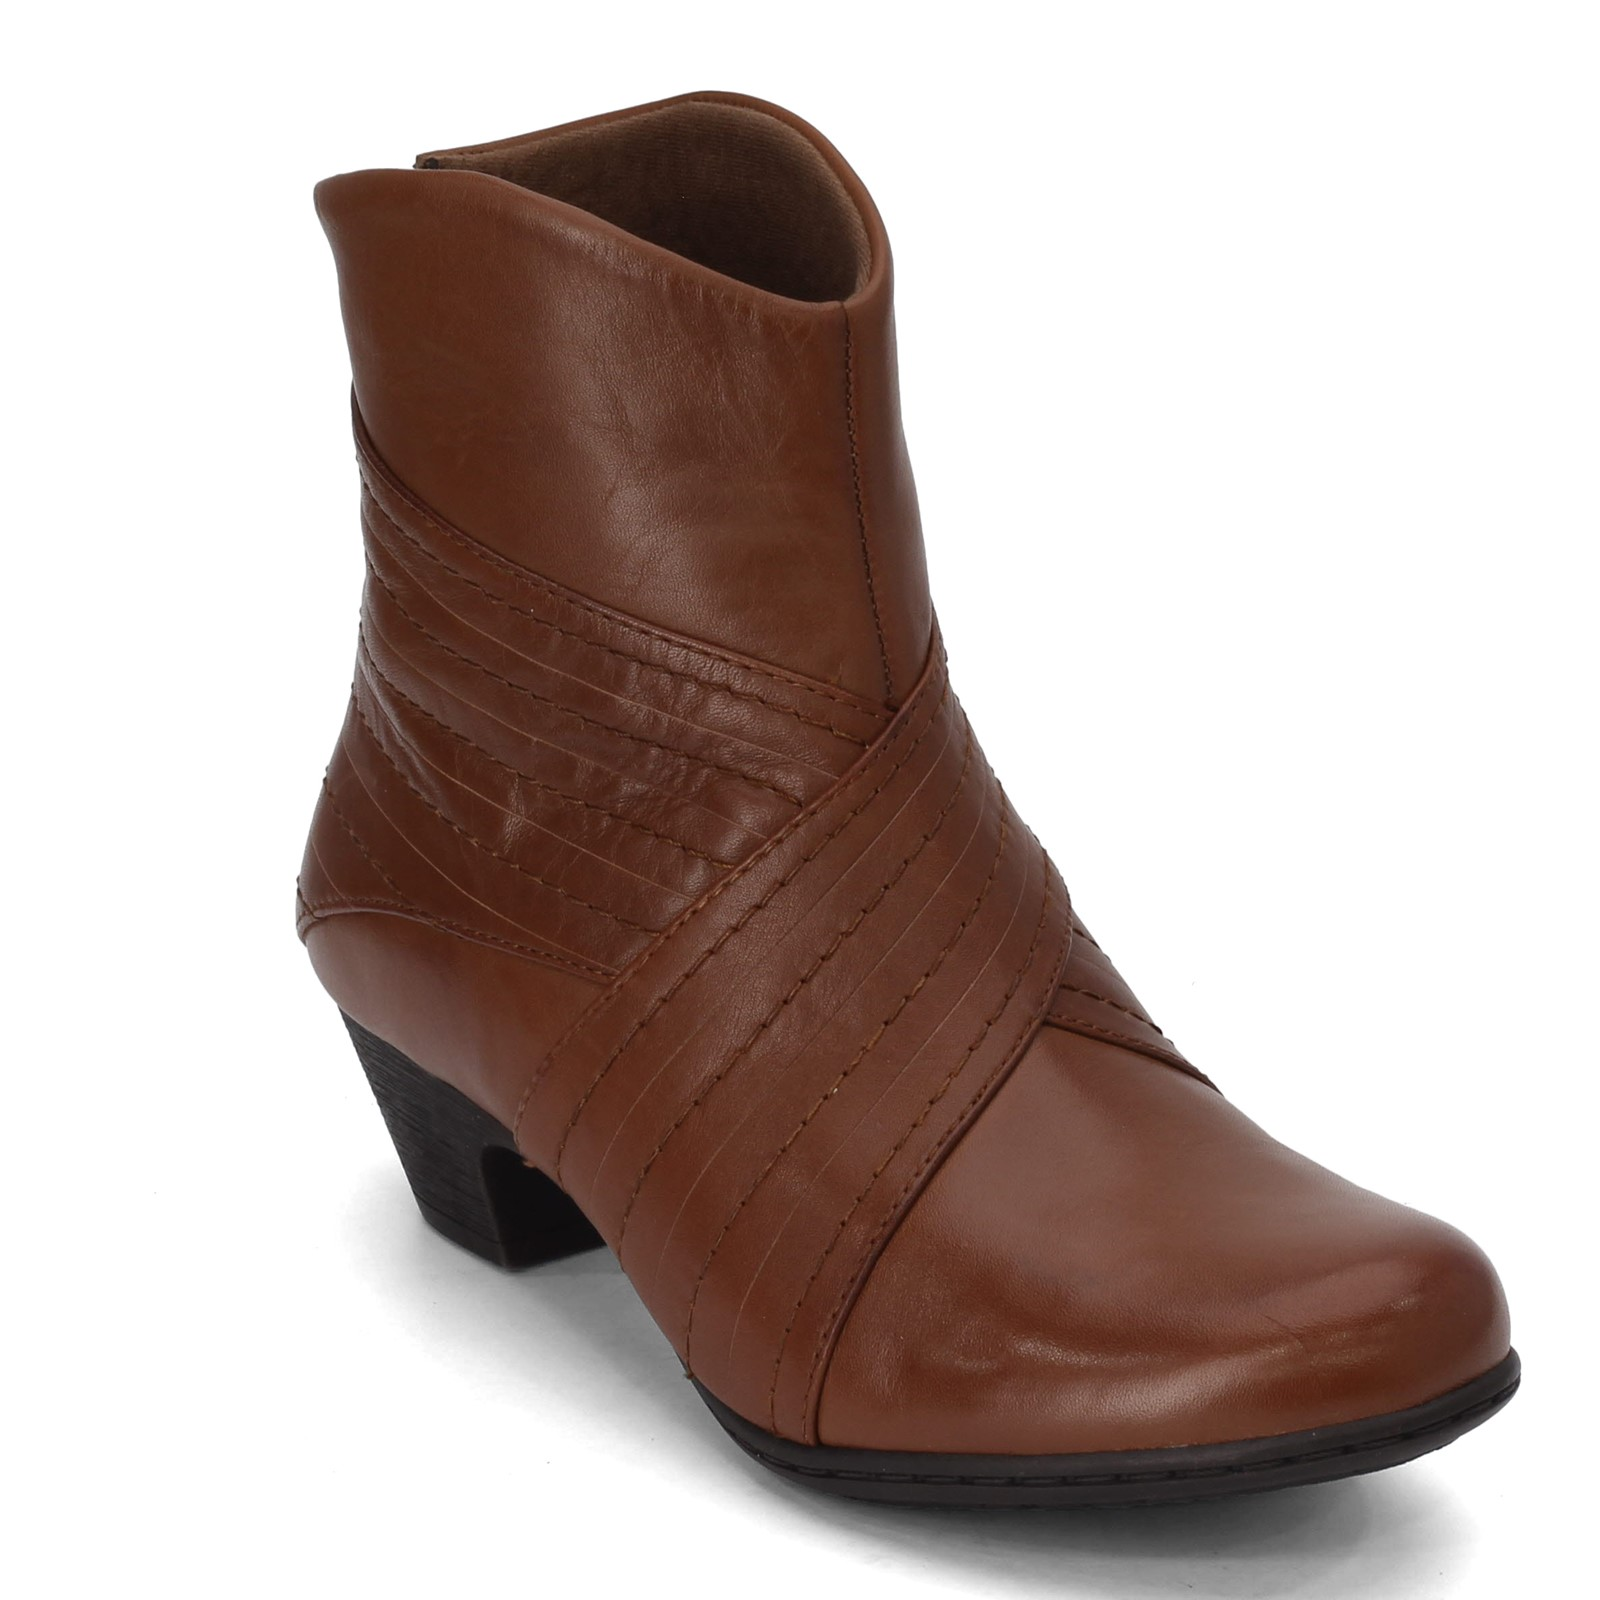 Women's Rockport, Faline Ankle Boots